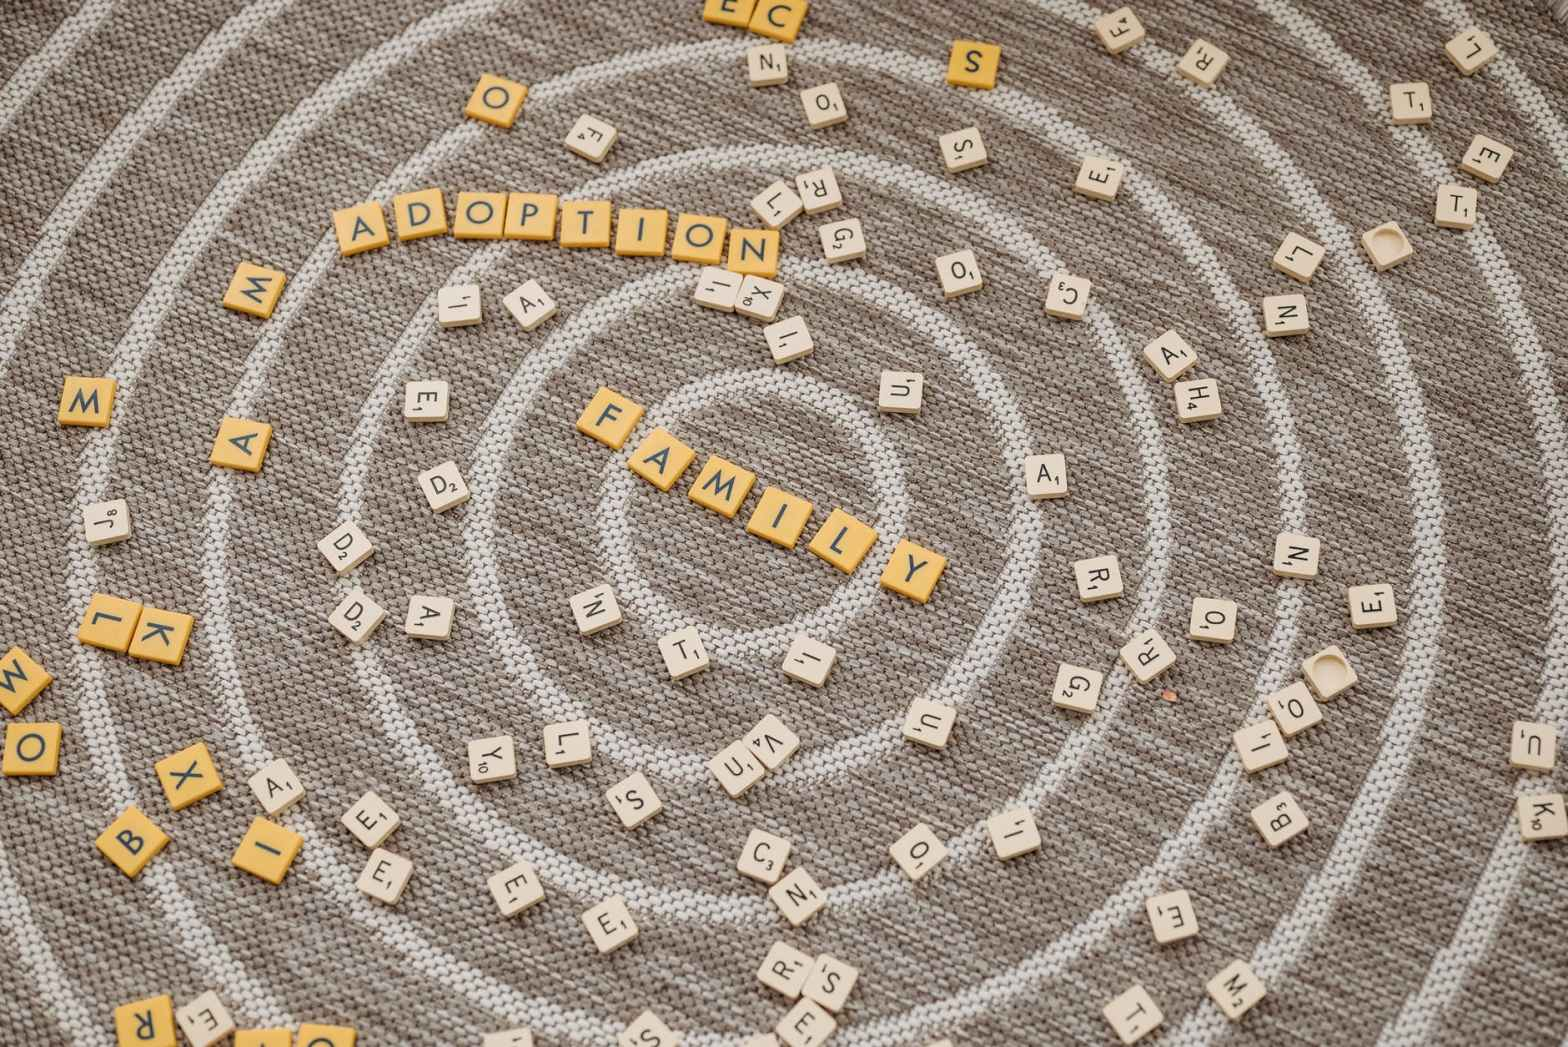 scrabble tiles scattered on the brown carpet